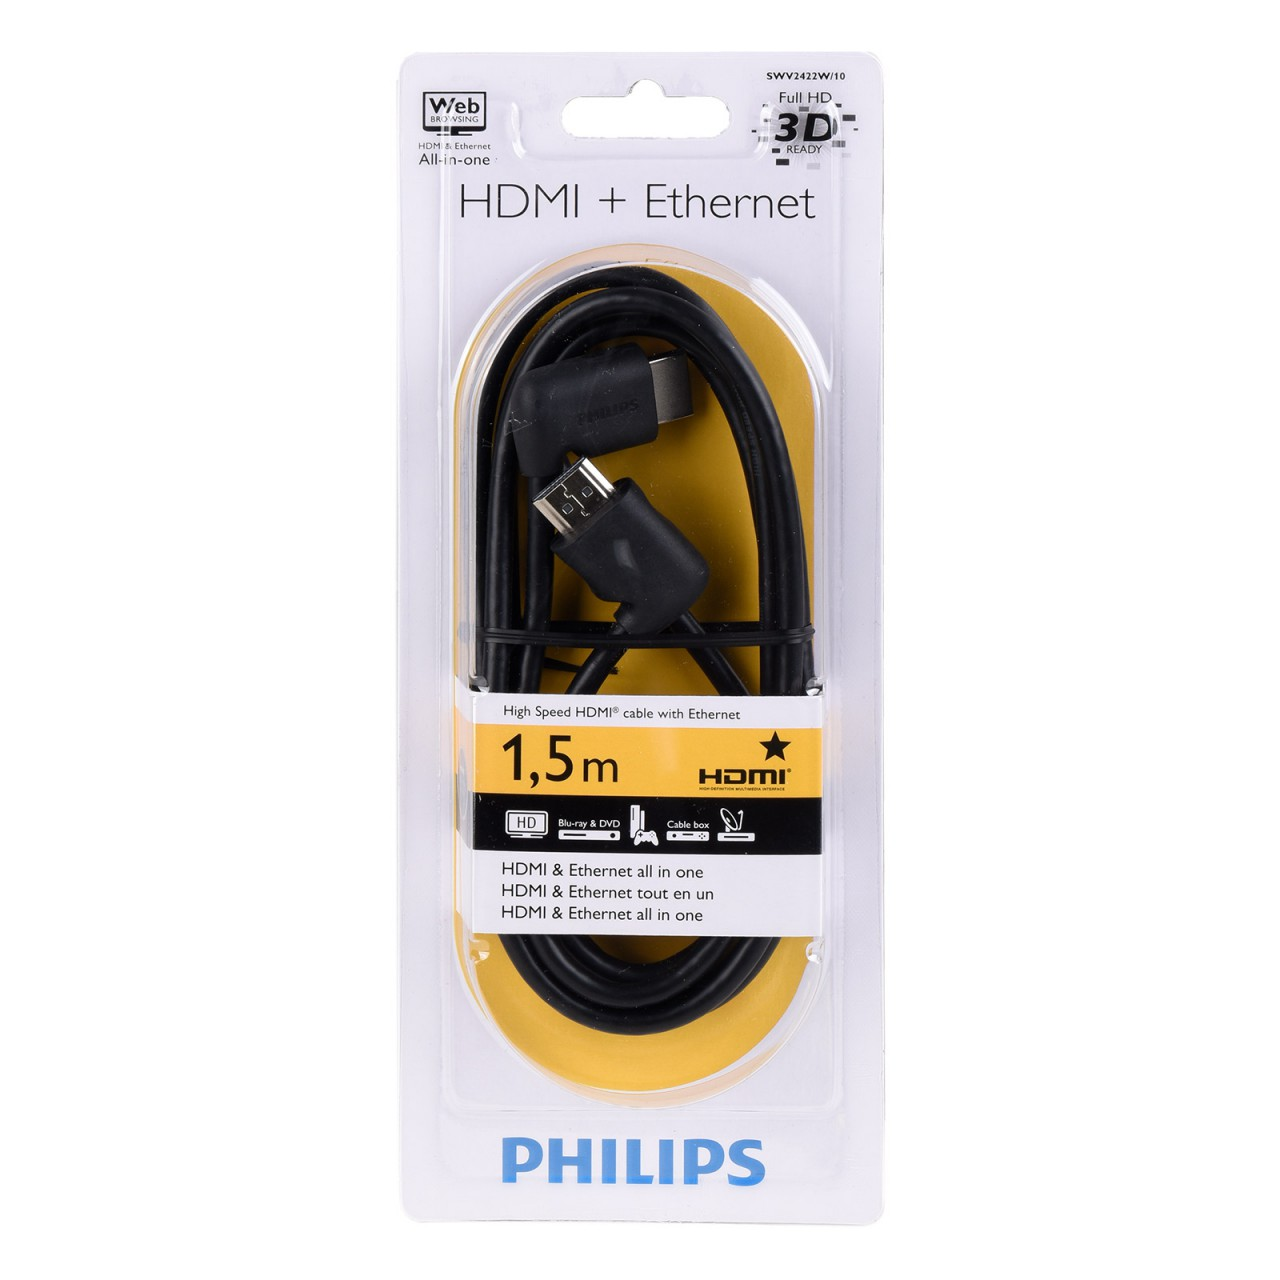 Philips SWV 2422 W/10 HDMI + Ethernet Kabel 1,5 m schwarz